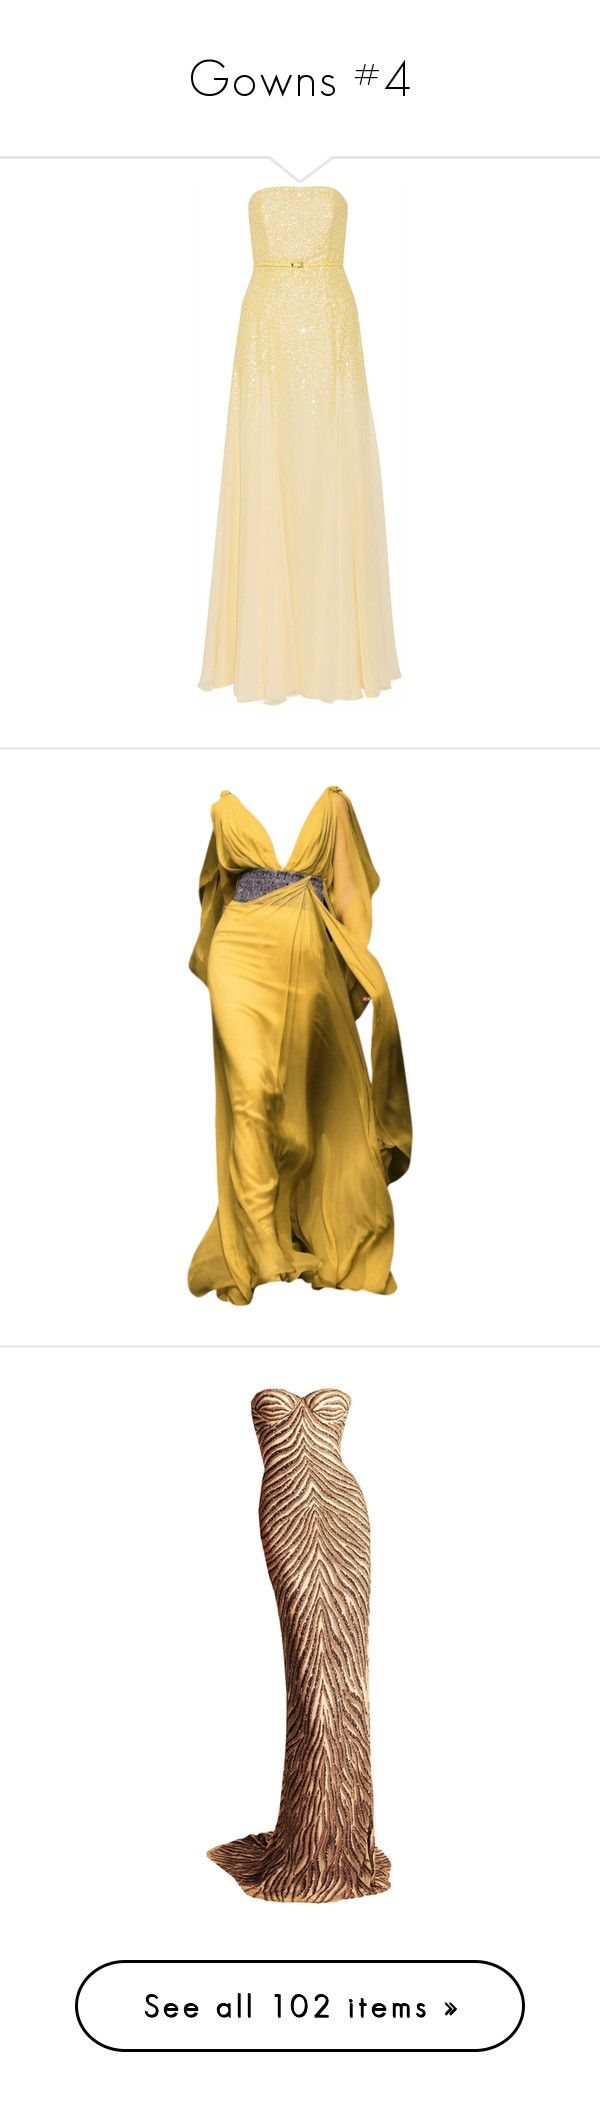 """""""Gowns #4"""" by colonae ❤ liked on Polyvore featuring dresses, gowns, long dresses, evening gowns, yellow, yellow ball gown, sequin dress, strapless gown, sequin bustier and yellow evening gown"""